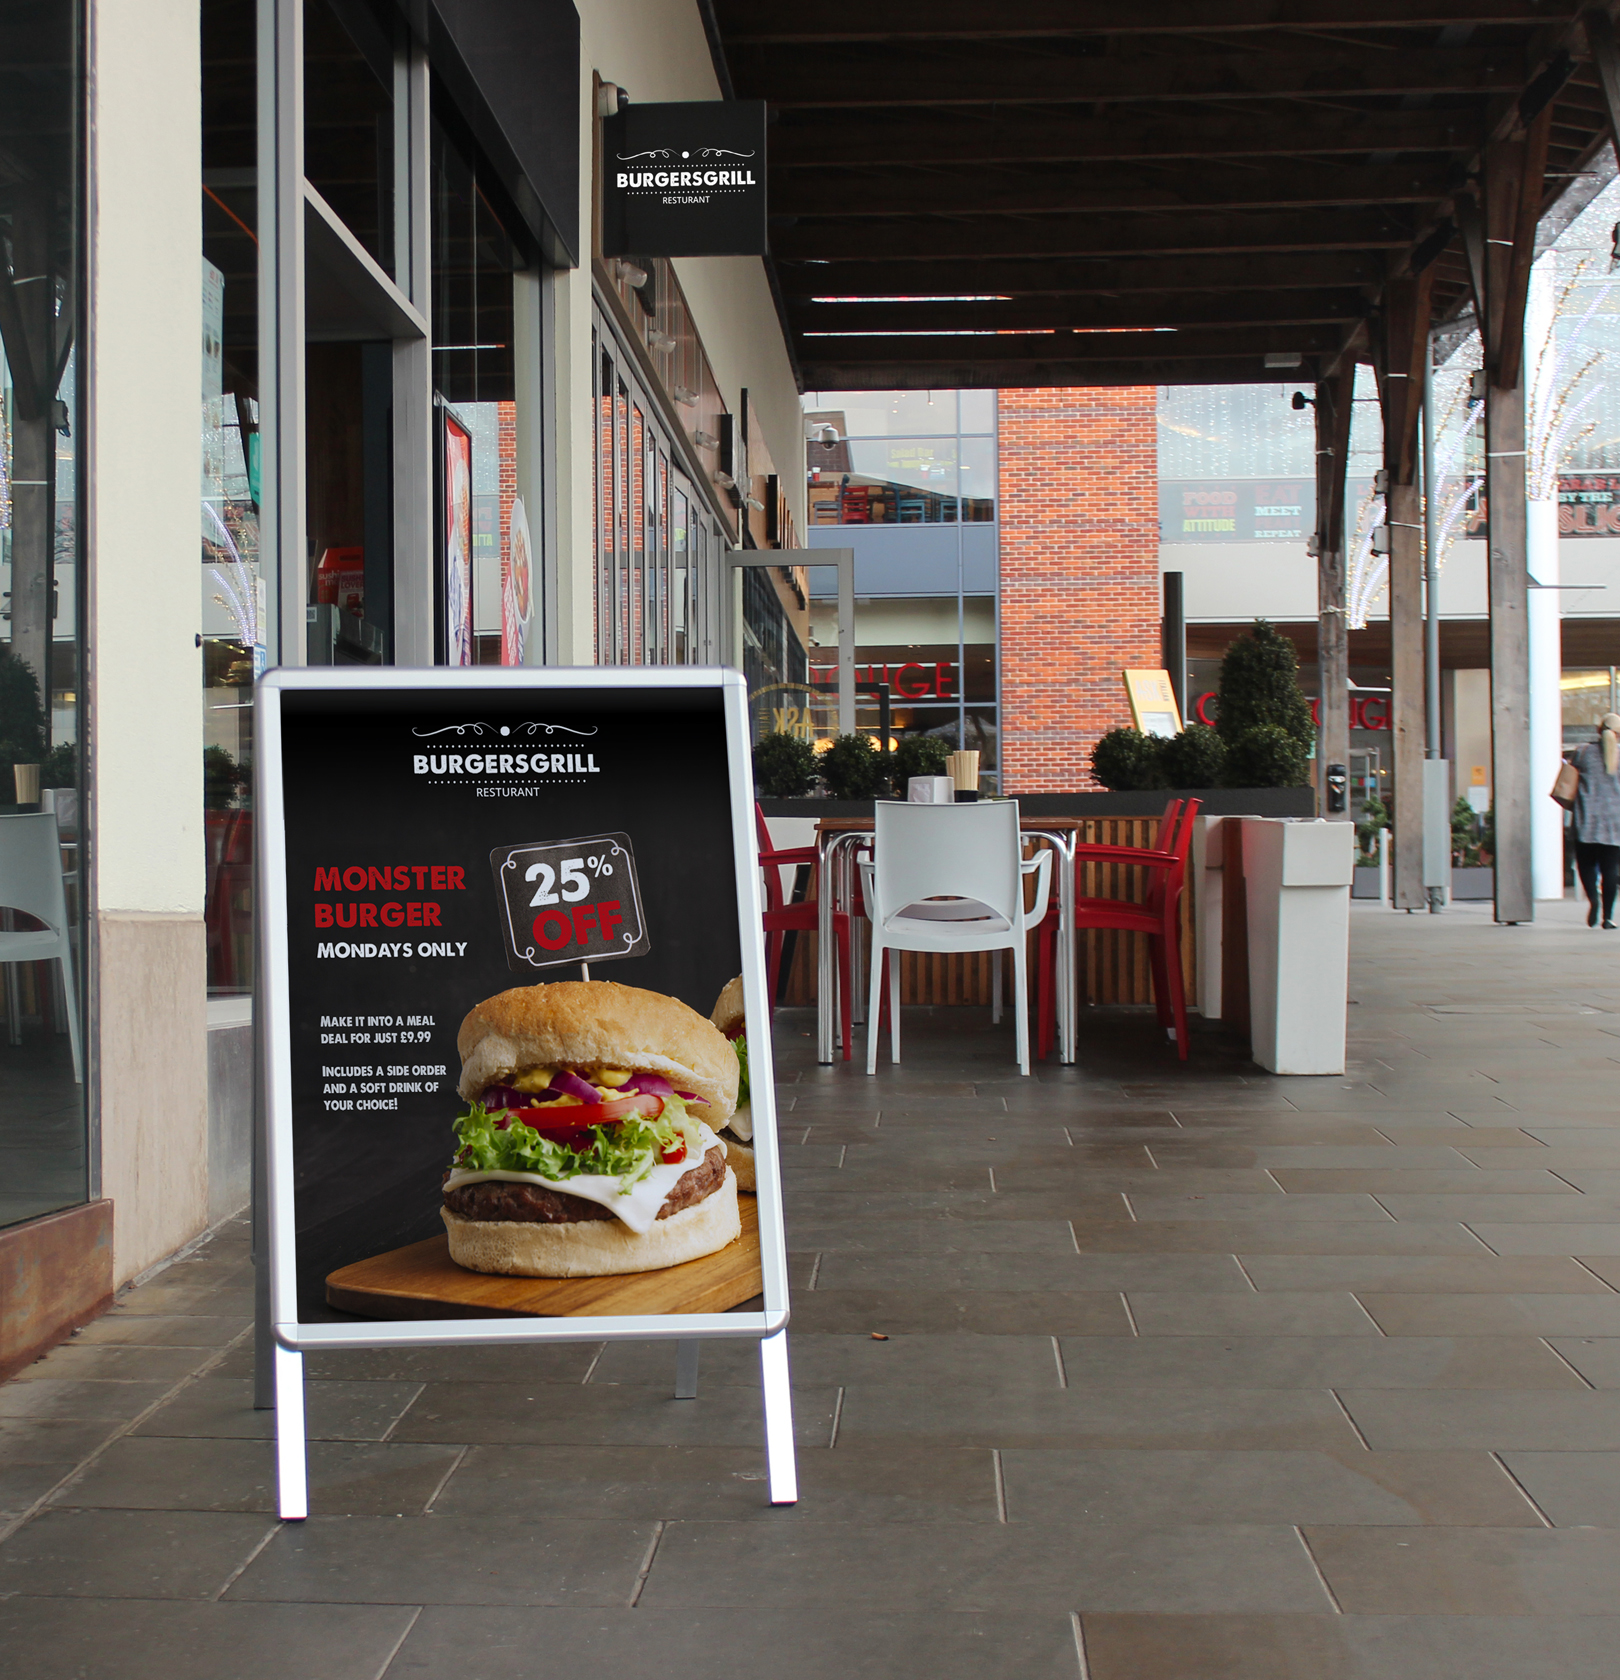 Silver A-Master on Pavement with Burger Poster